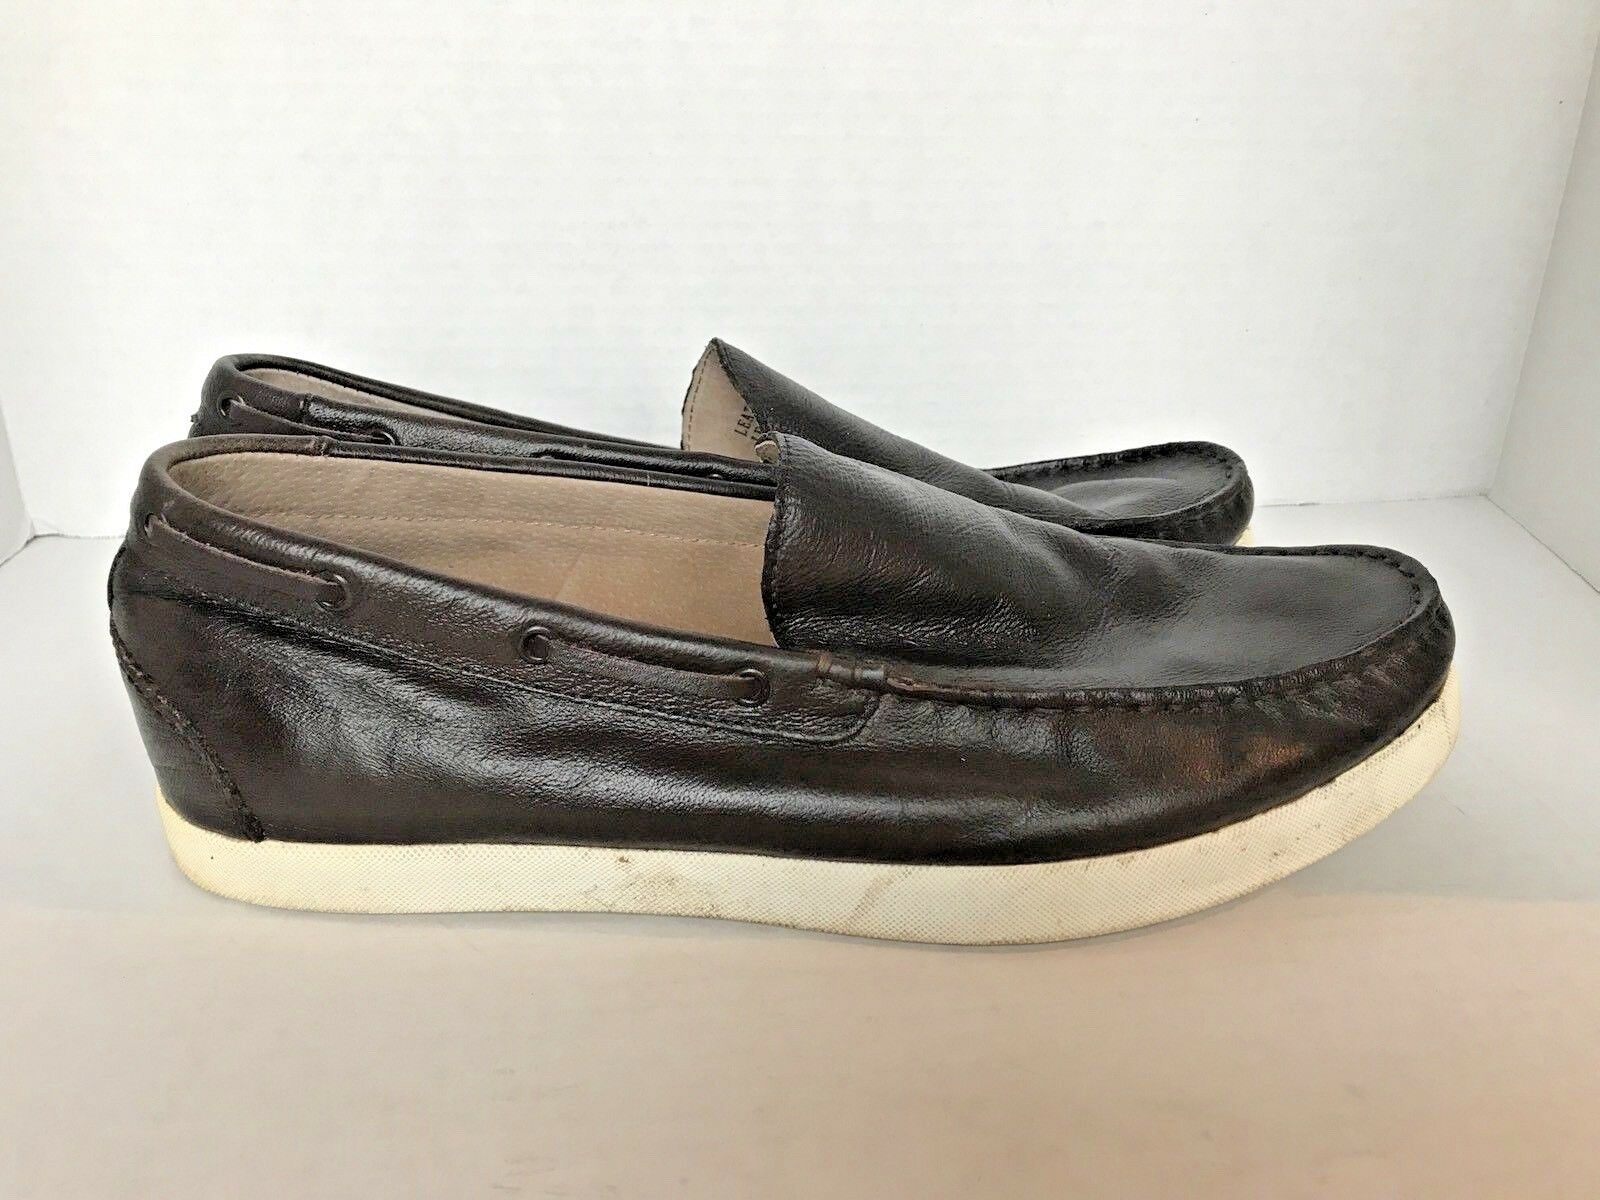 JOSEPH ABBOUD Men's Leather Size Loafers Slip Ons - Size Leather 8.5 Dark Brown 68eb20